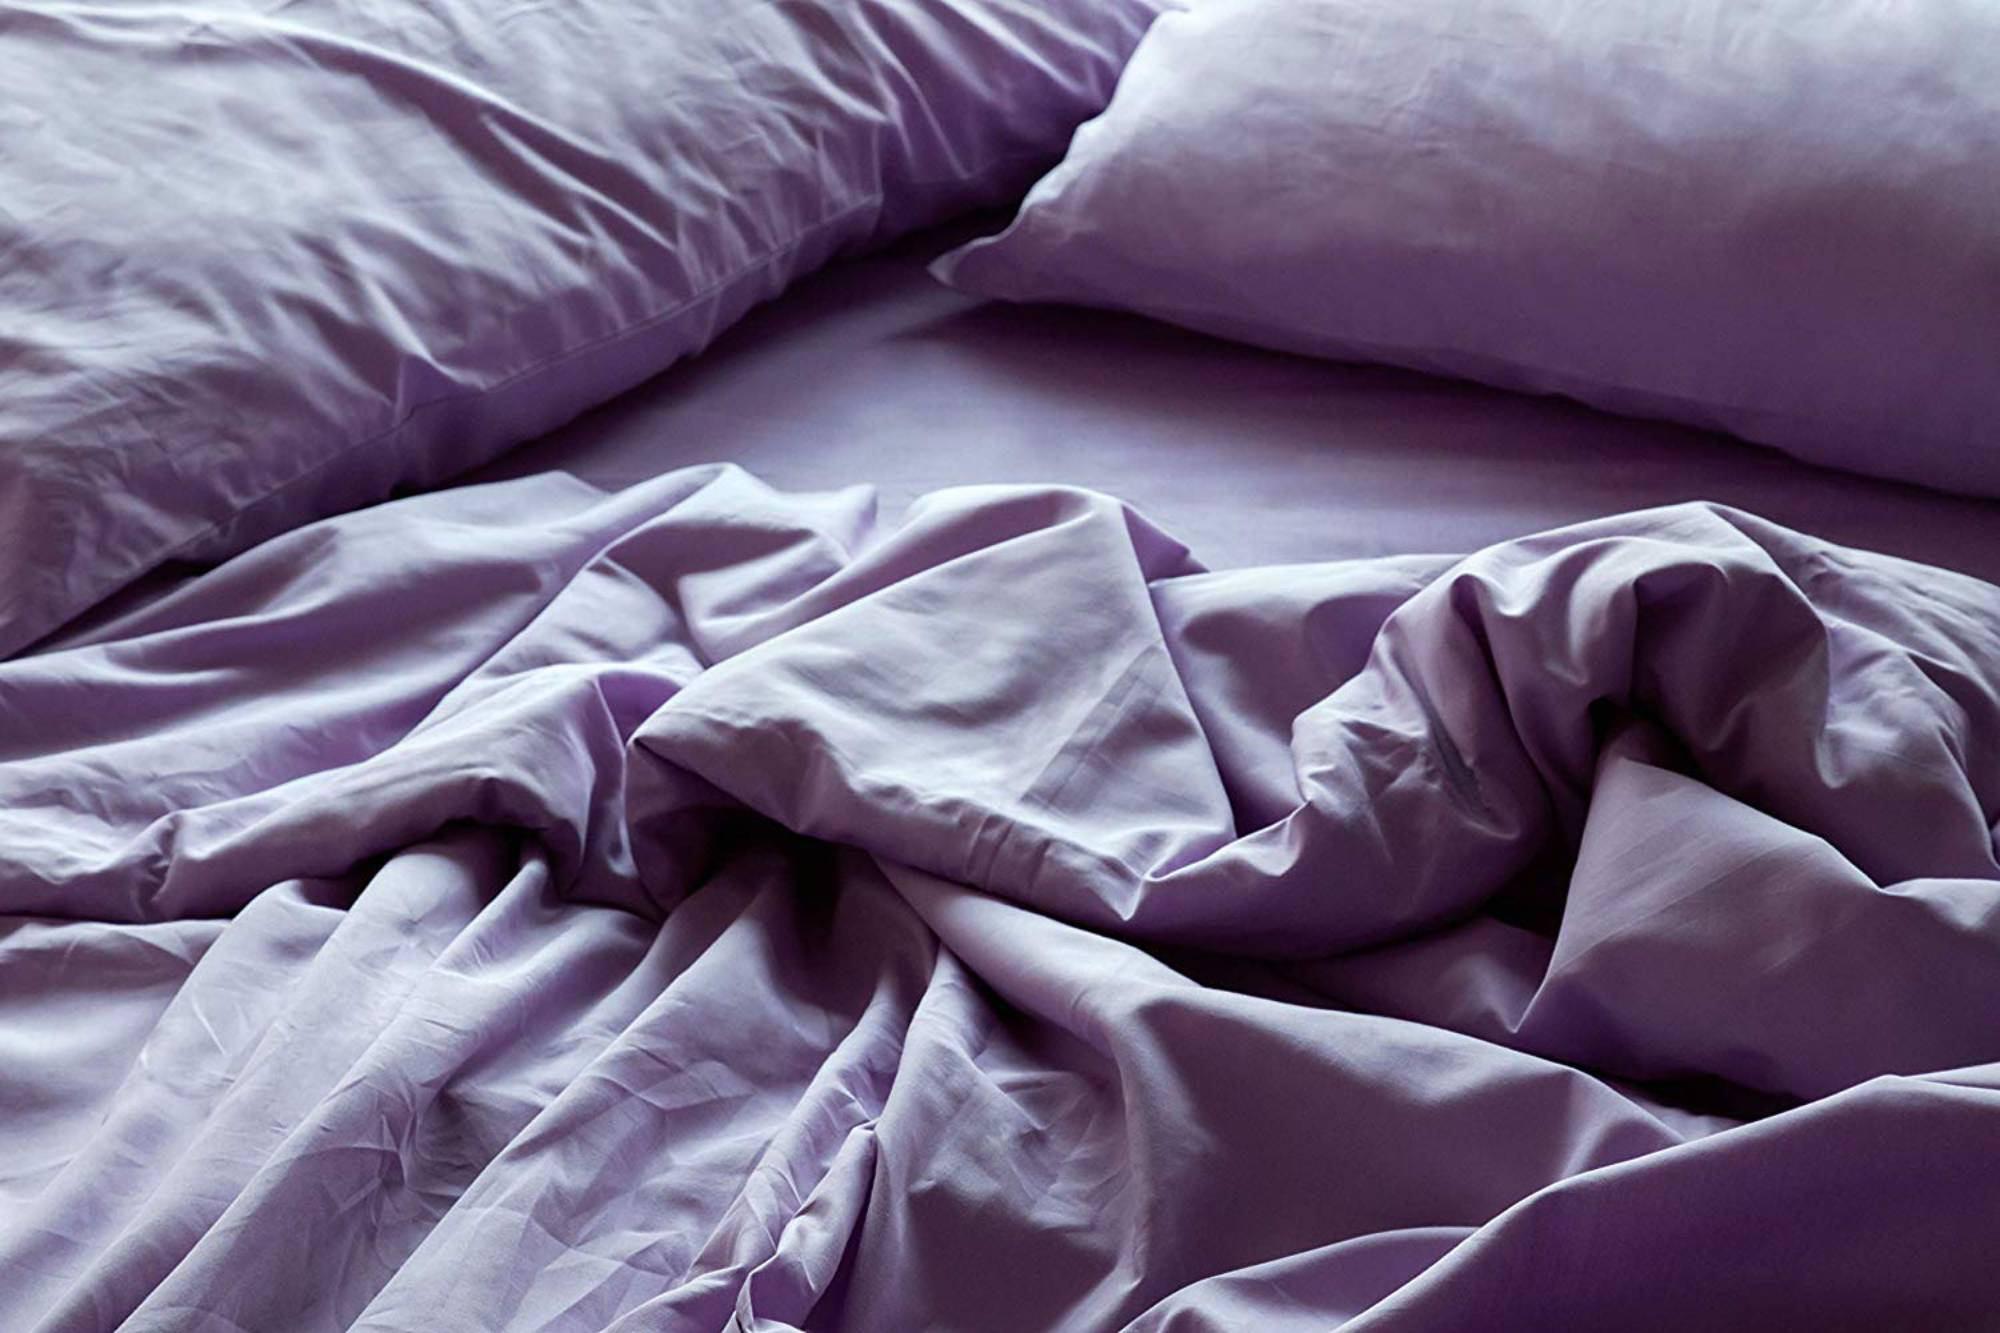 example of organic cotton percale sheets